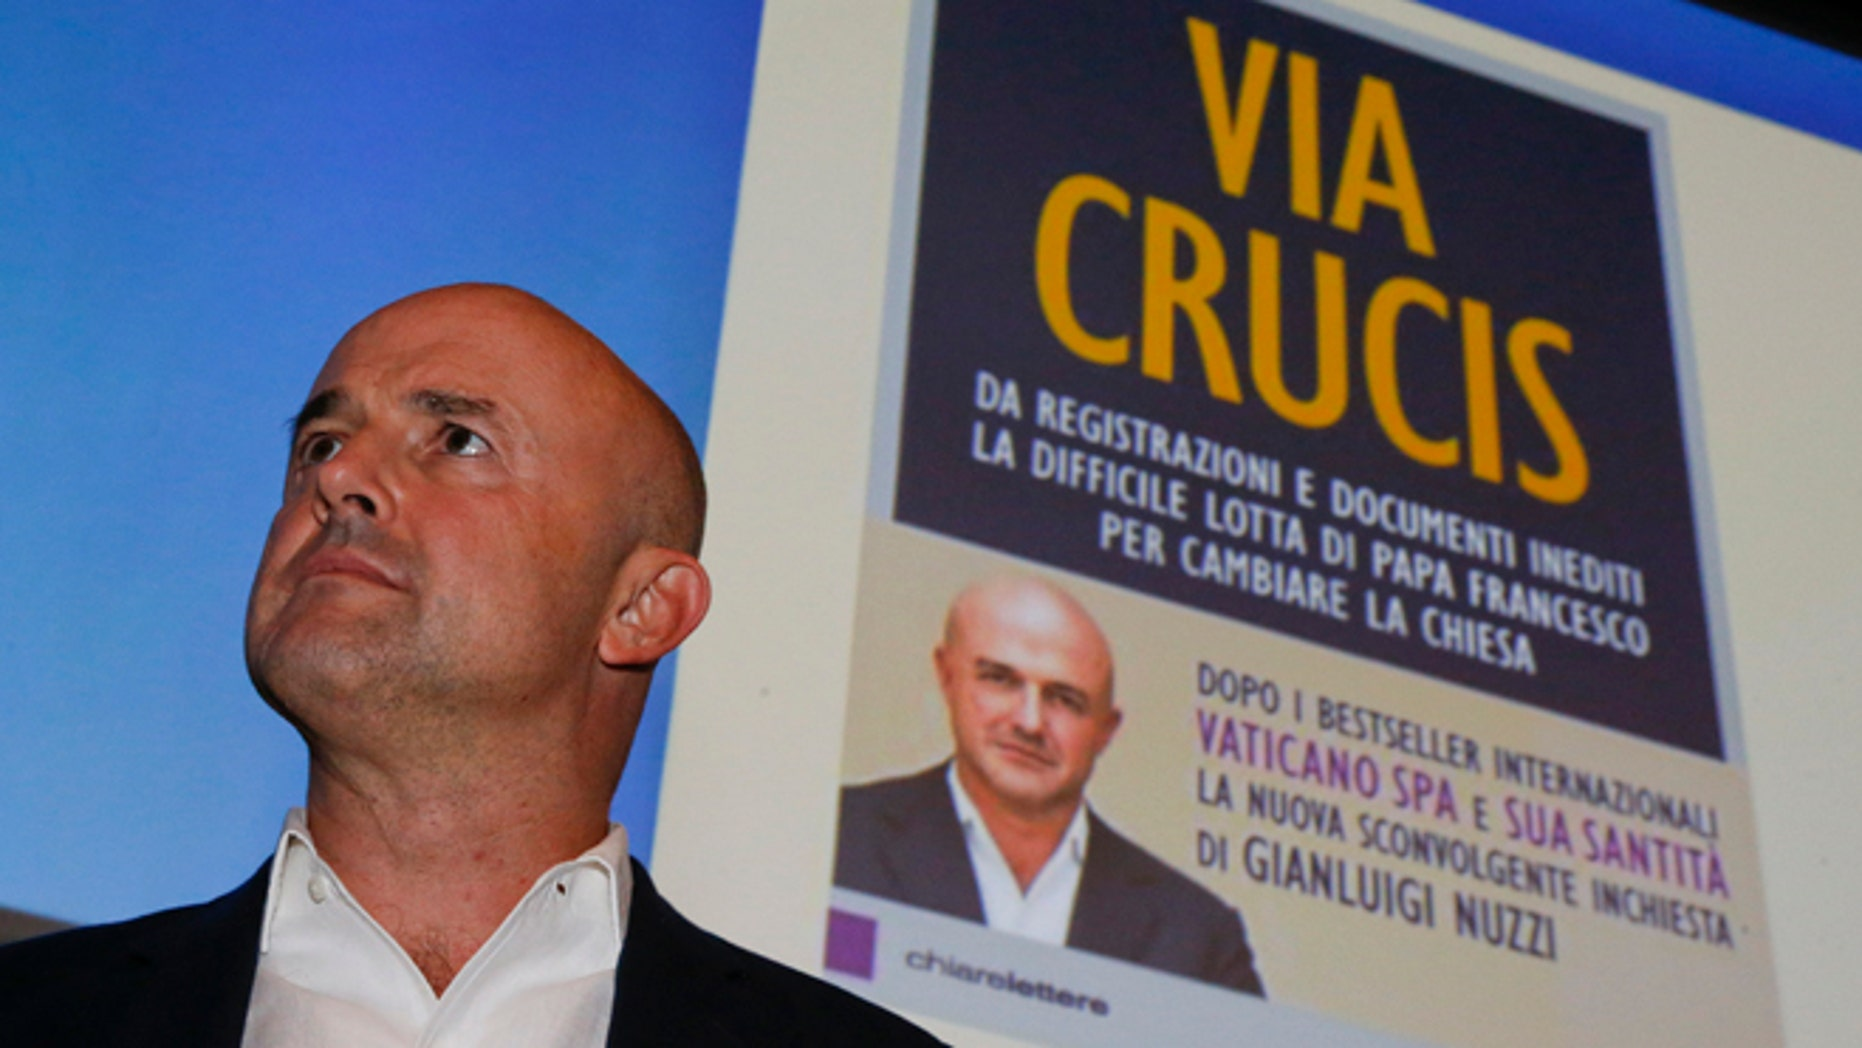 """Italian journalist and writer Gianluigi Nuzzi attends a press conference to promote the release of his new book ''Via Crucis'' (""""Merchants in the Temple"""", in the English language edition) in Milan, Italy, Monday, Nov. 16 2015. In his book Nuzzi makes some startling allegations, including a report that Vatican """"postulators"""" - officials who promote sainthood causes - bring in hundreds of thousands of euros in donations for their causes but are subject to no oversight as to how the money is spent. (AP Photo/Luca Bruno)"""